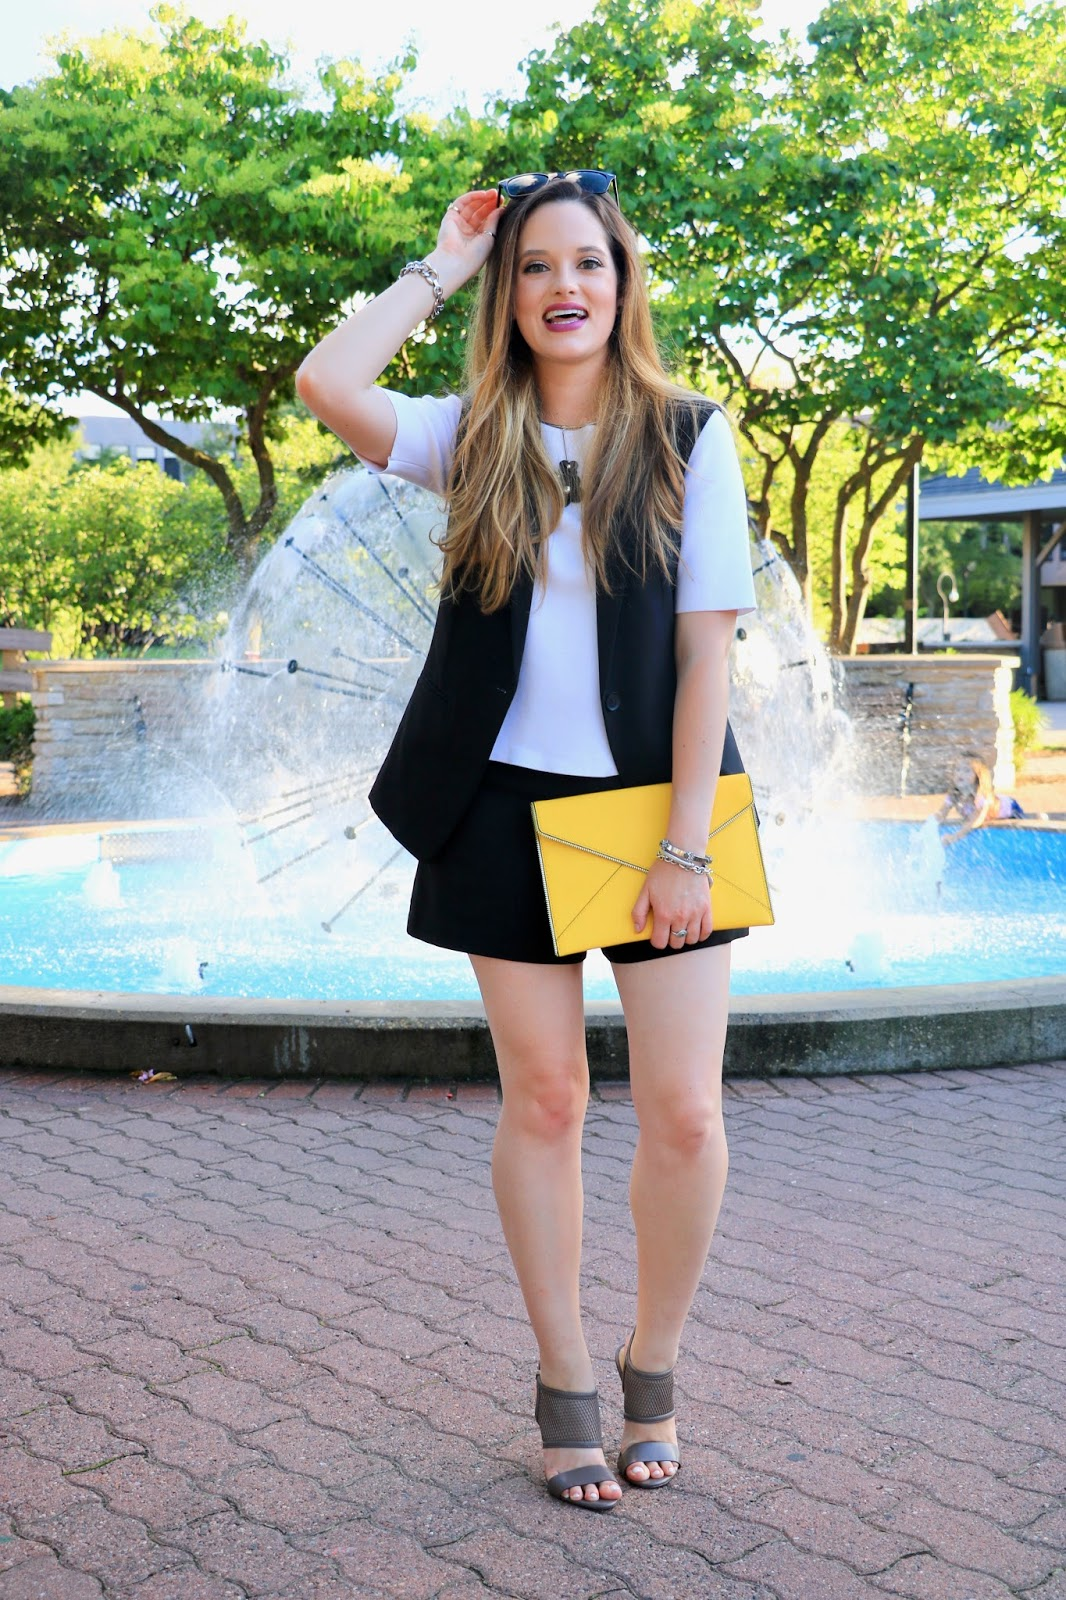 NYC fashion blogger Kathleen Harper of Kat's Fashion Fix giving shorts outfit ideas